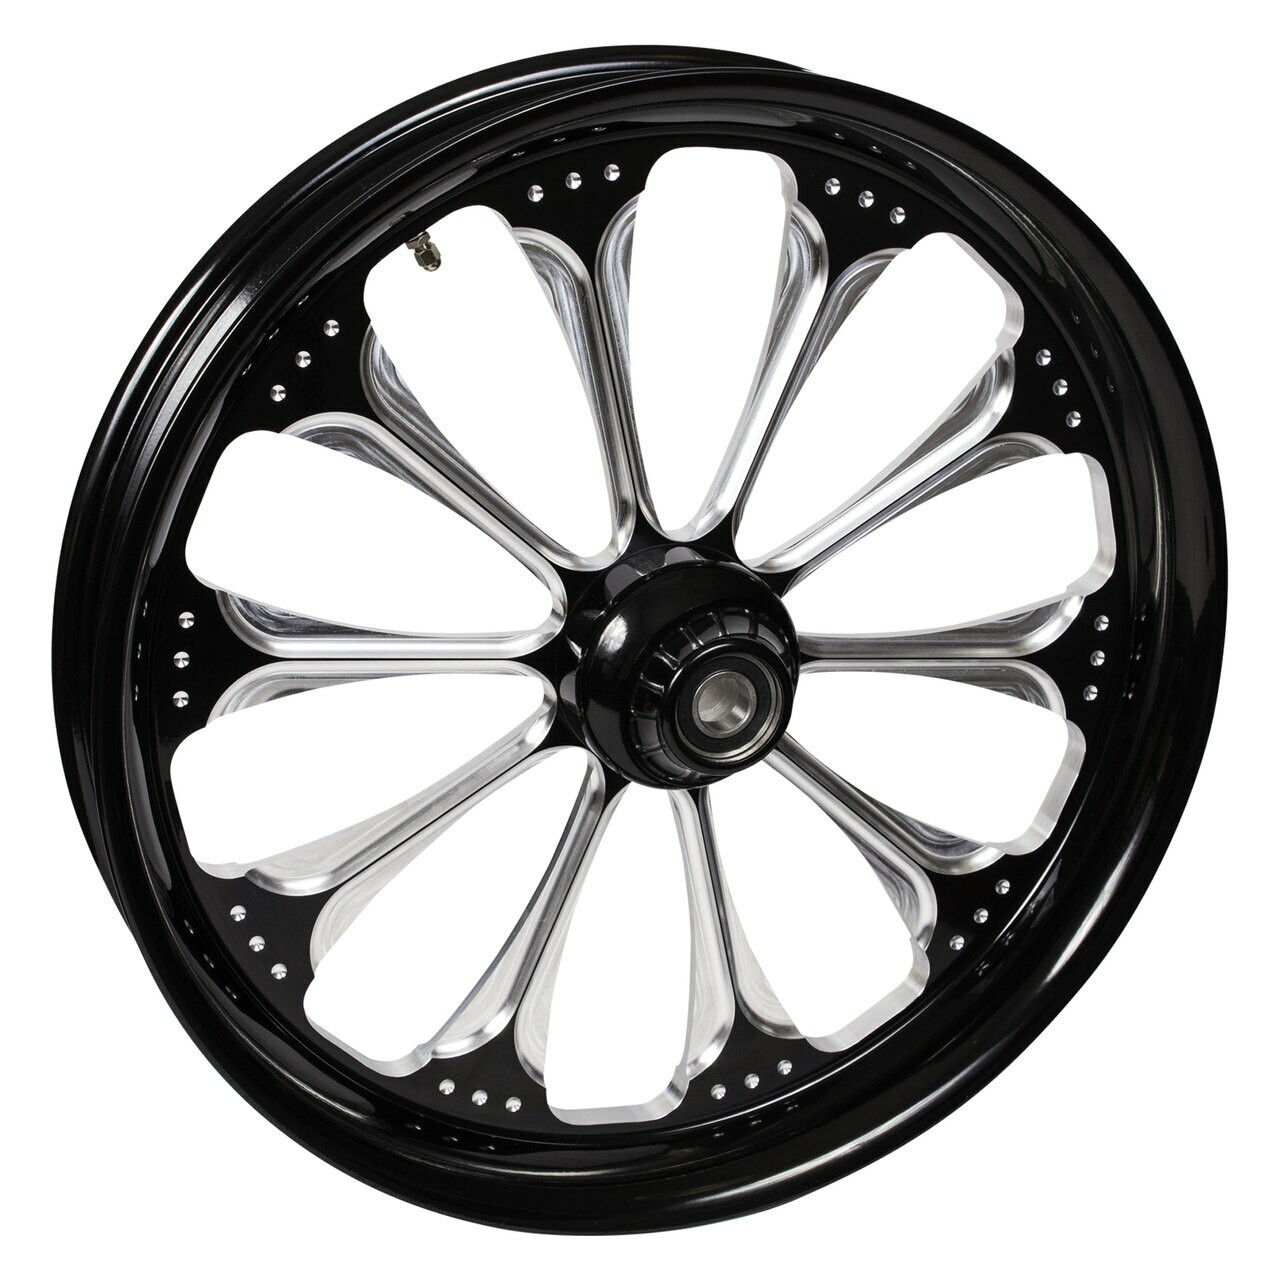 Indian Chieftain Motorcycle Wheels - Wizard Black Contrast